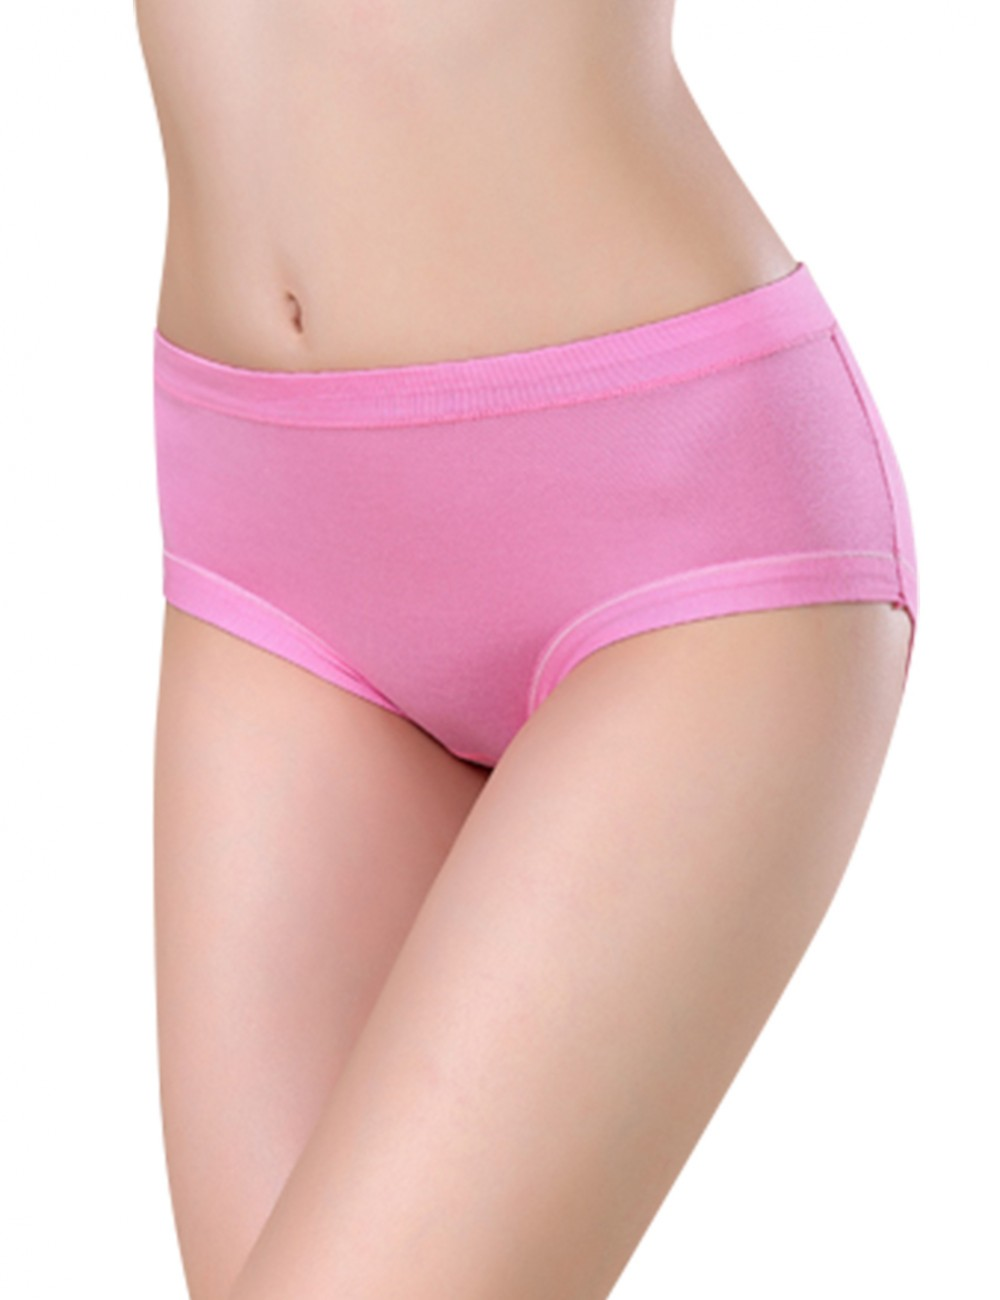 Naughty Watermelon Red Triangle Physiological Bamboo Panties